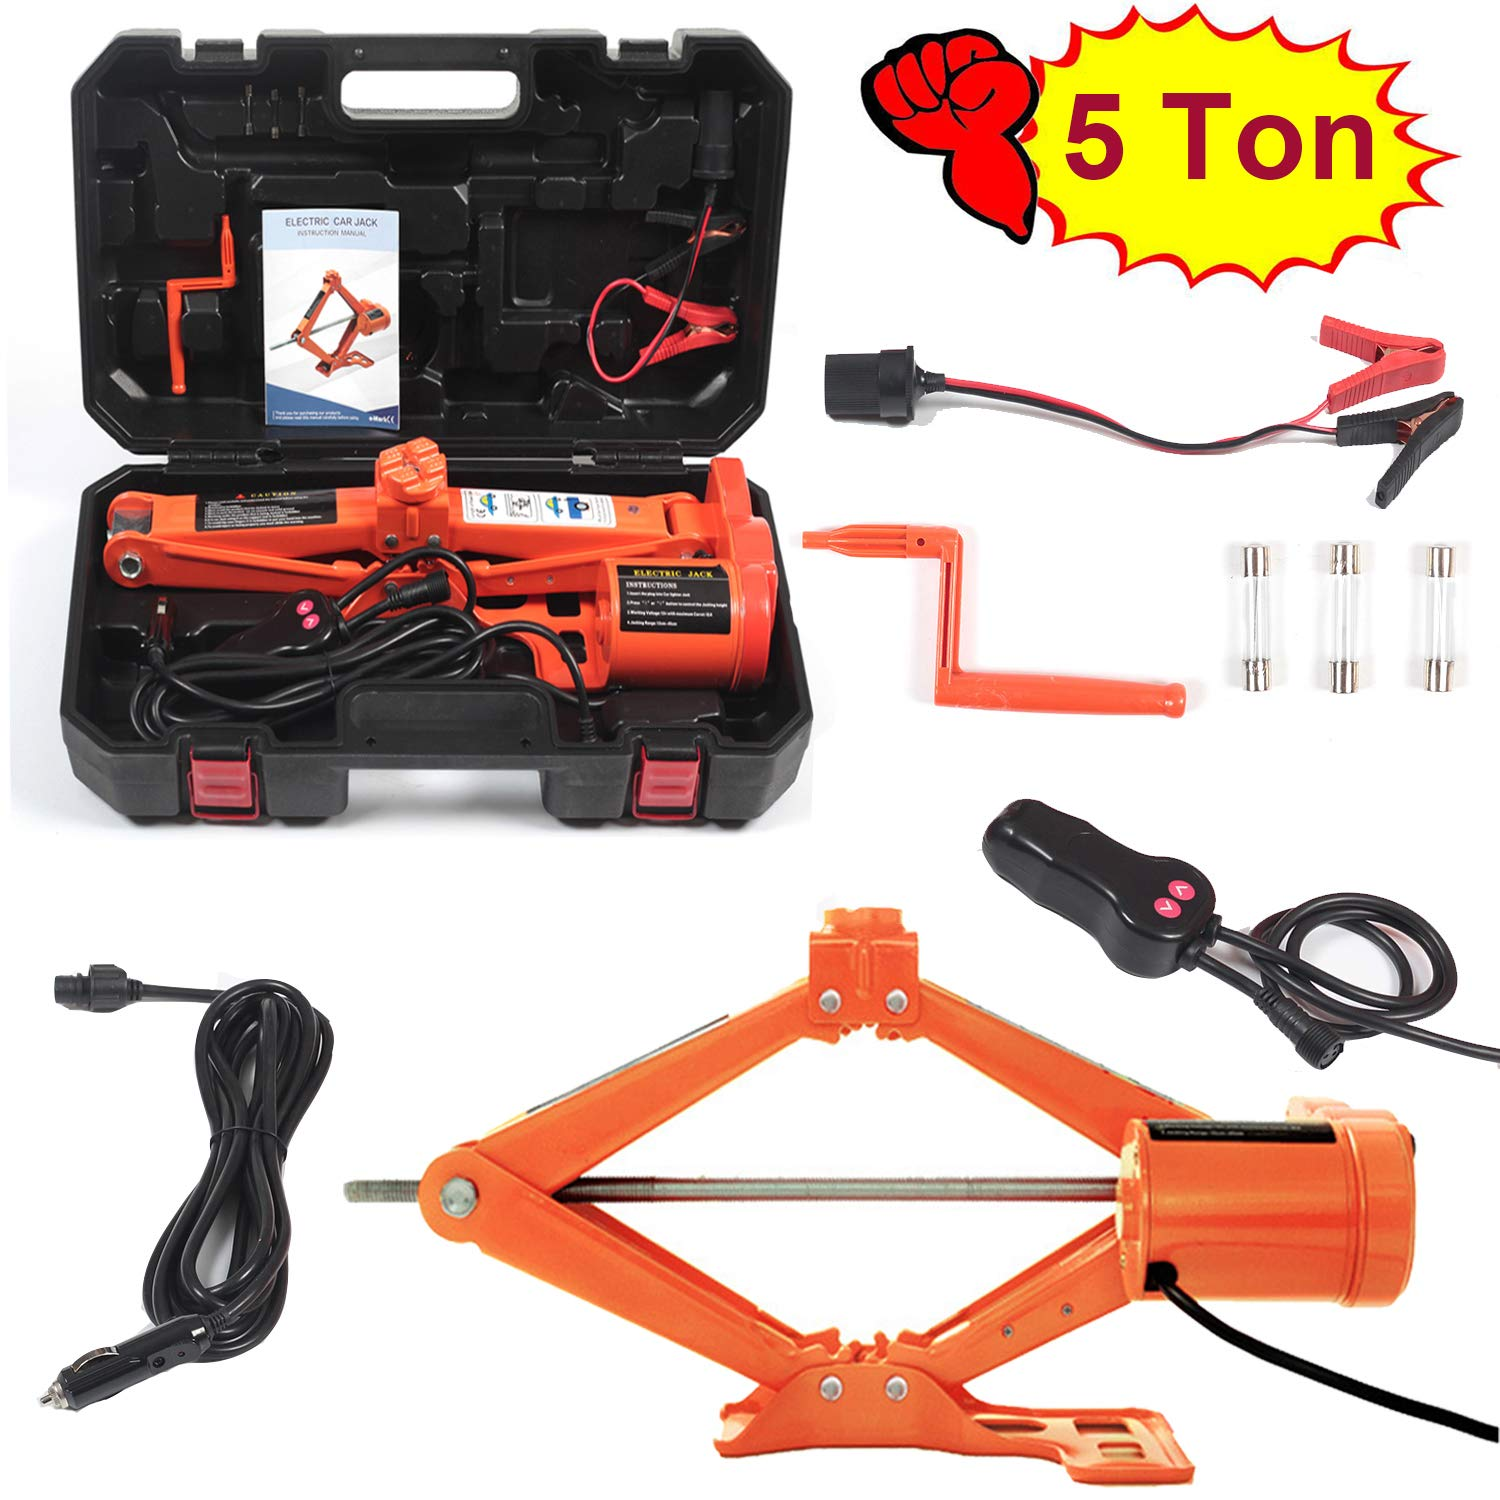 Electric Car Floor Jack 5 Ton All-in-one Automatic 12V Scissor Lift Jack Set for SUV w/Remote Tire Change Repair Emergency Tool Kits Floor Jack for Vehicle Wheel Change (5T) by Reliancer